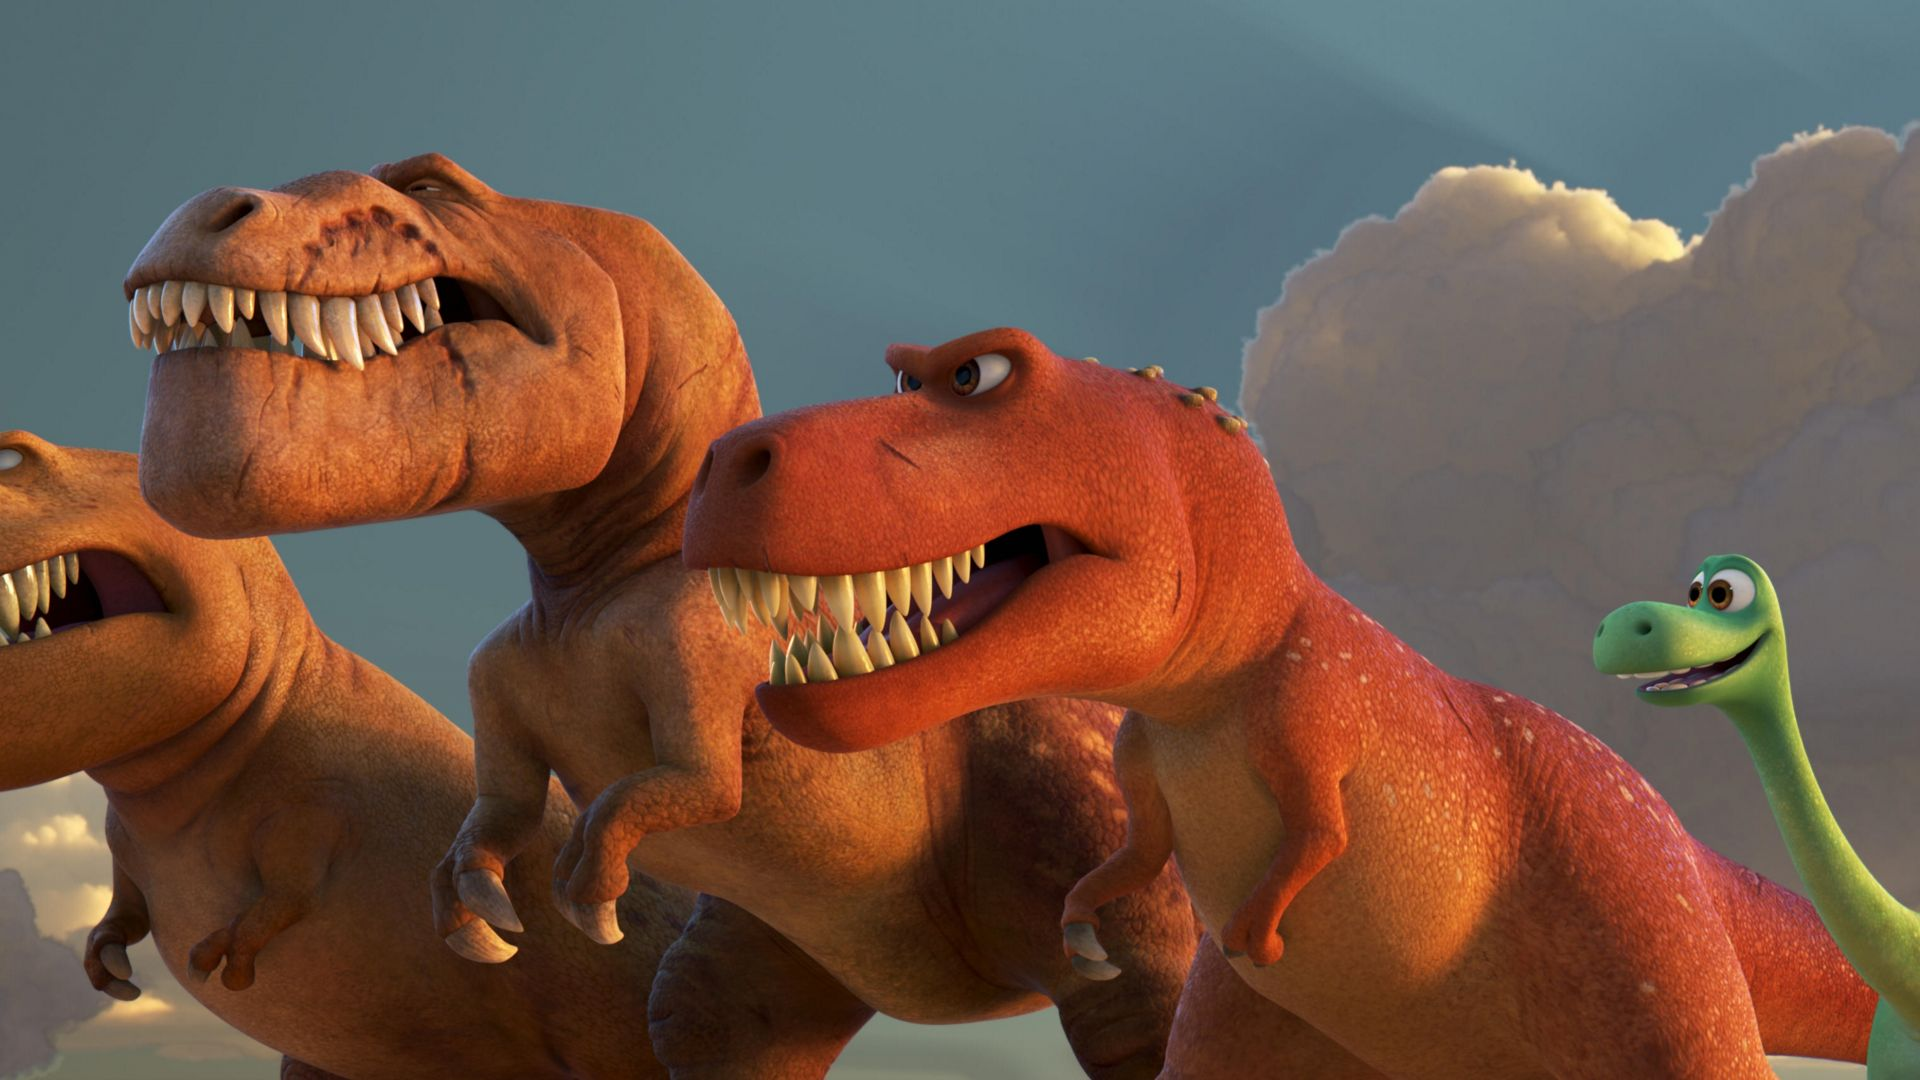 Triceratops The Good Dinosaur: Wallpaper The Good Dinosaur, Dinosaurs, Tyrannosaurus